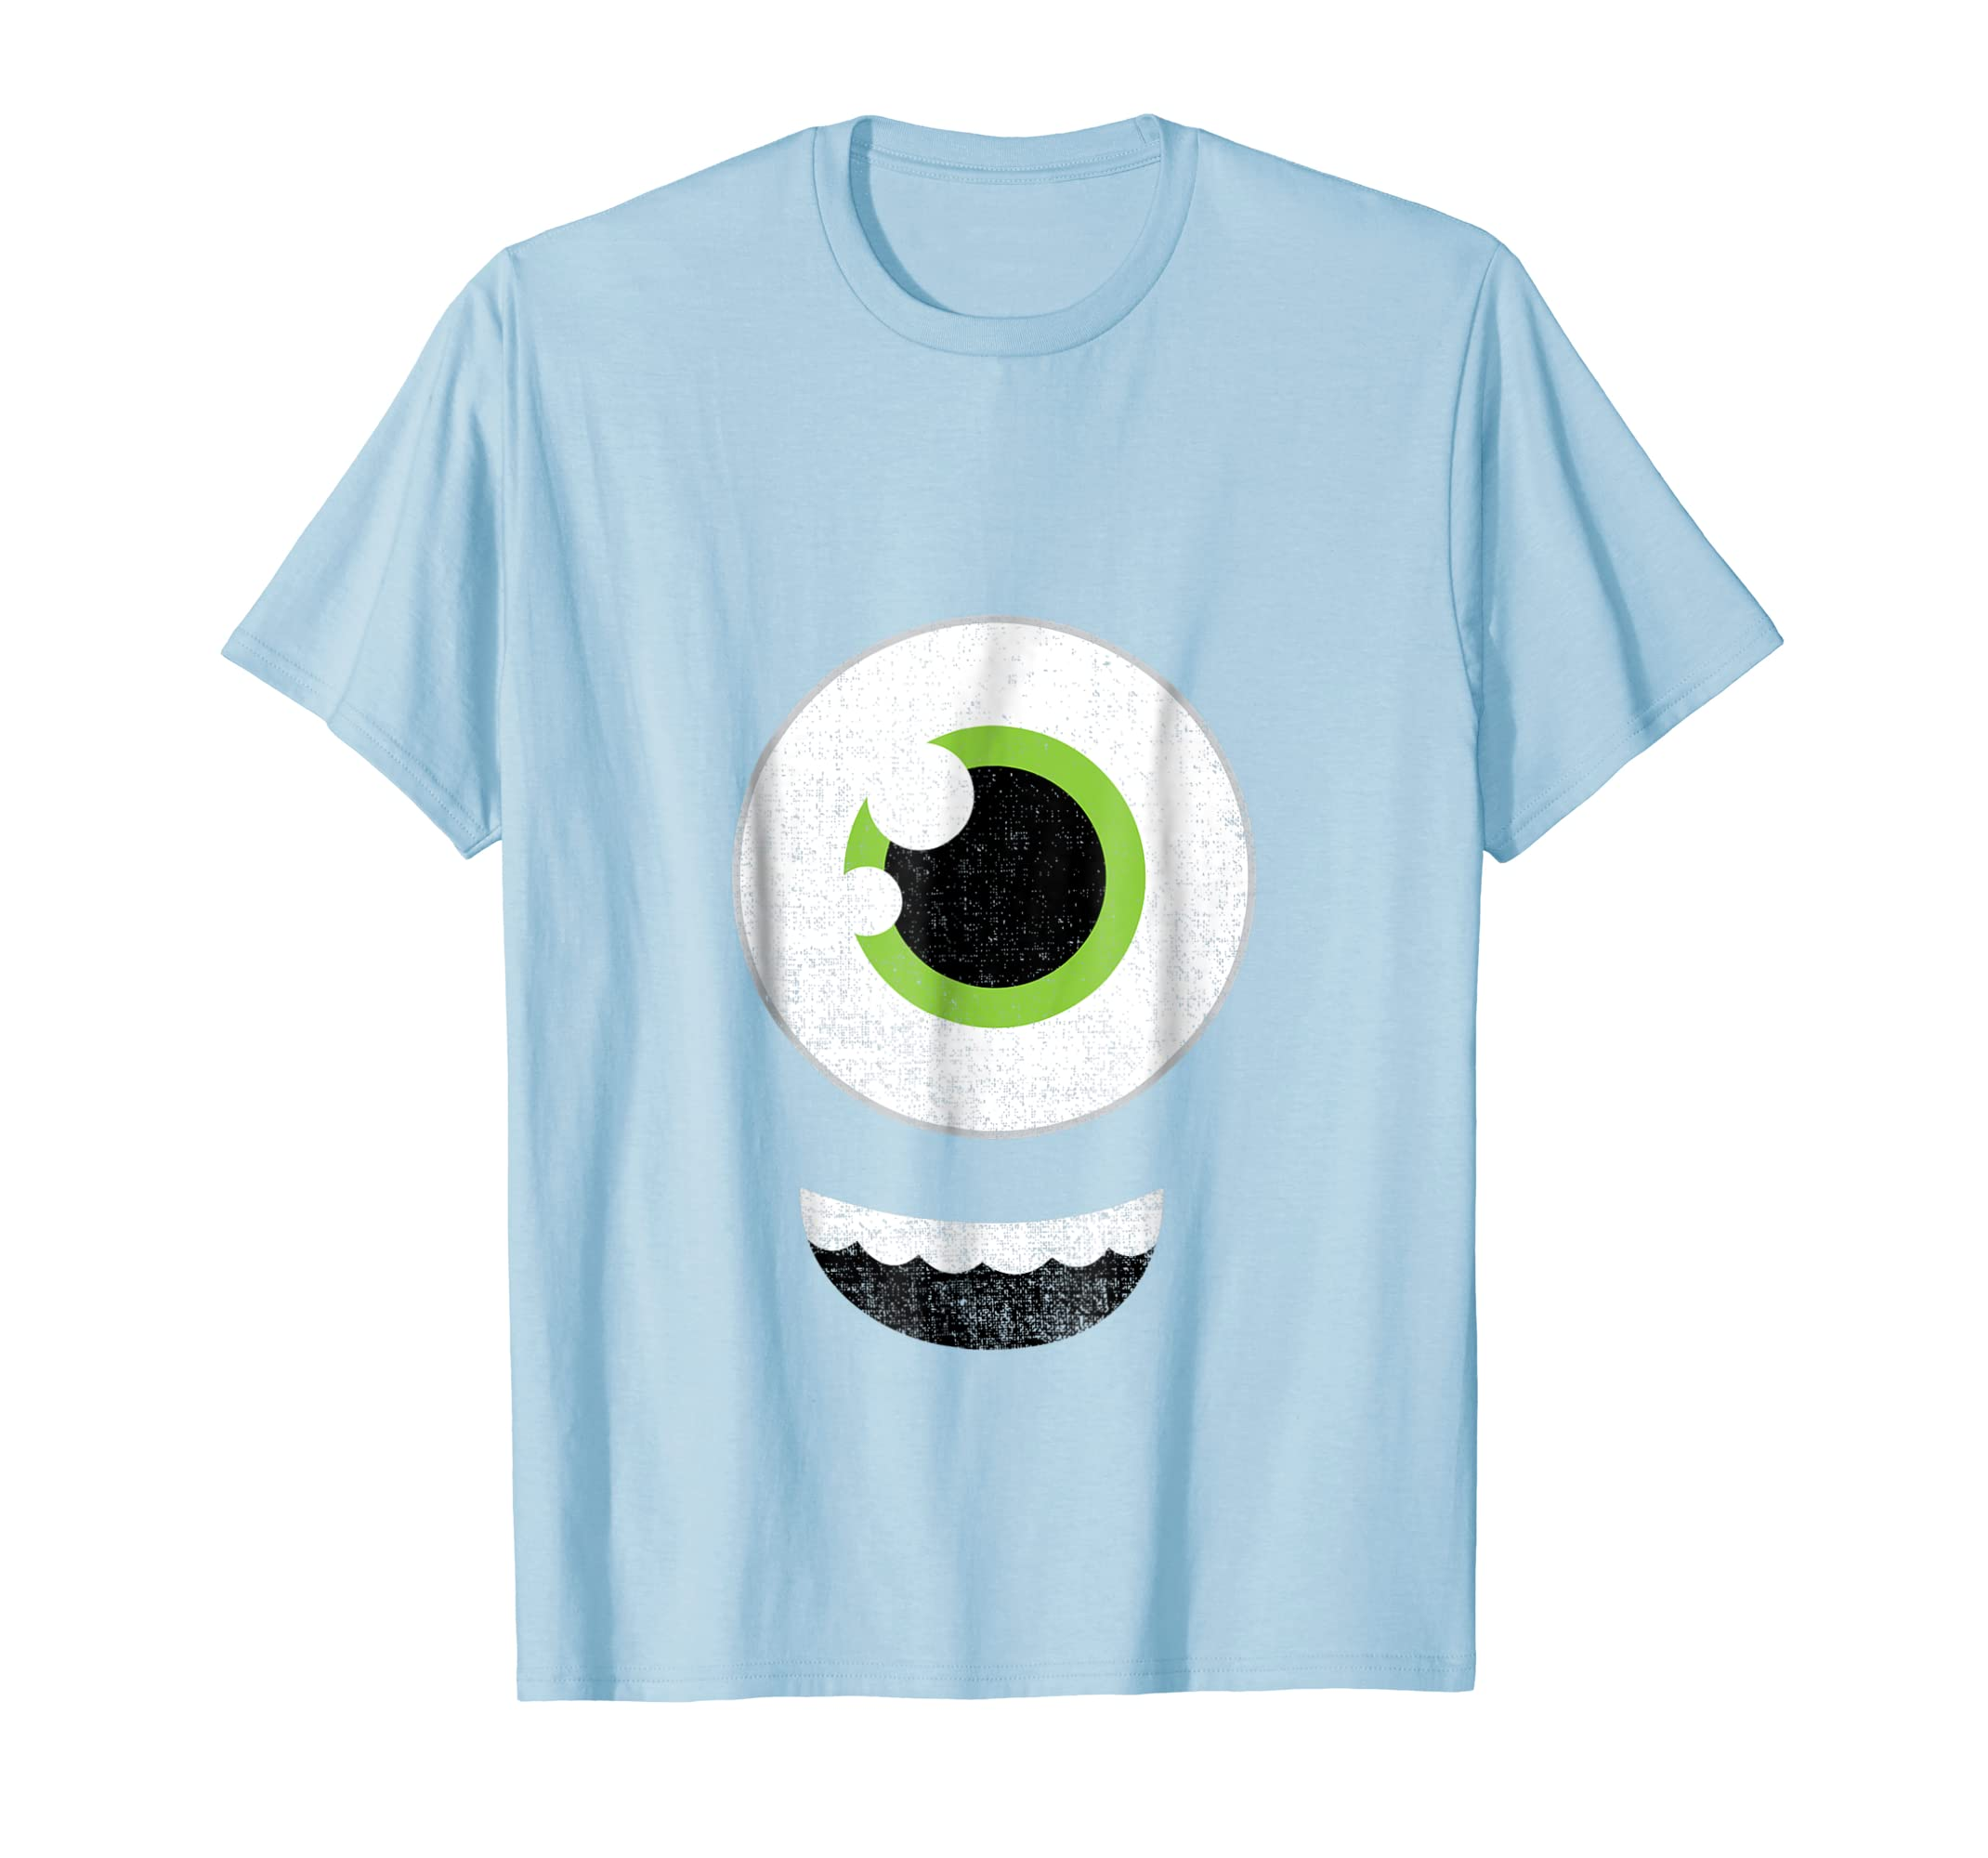 One Eyed Monster Emojis Shirt Halloween Easy Costume Face-Bawle